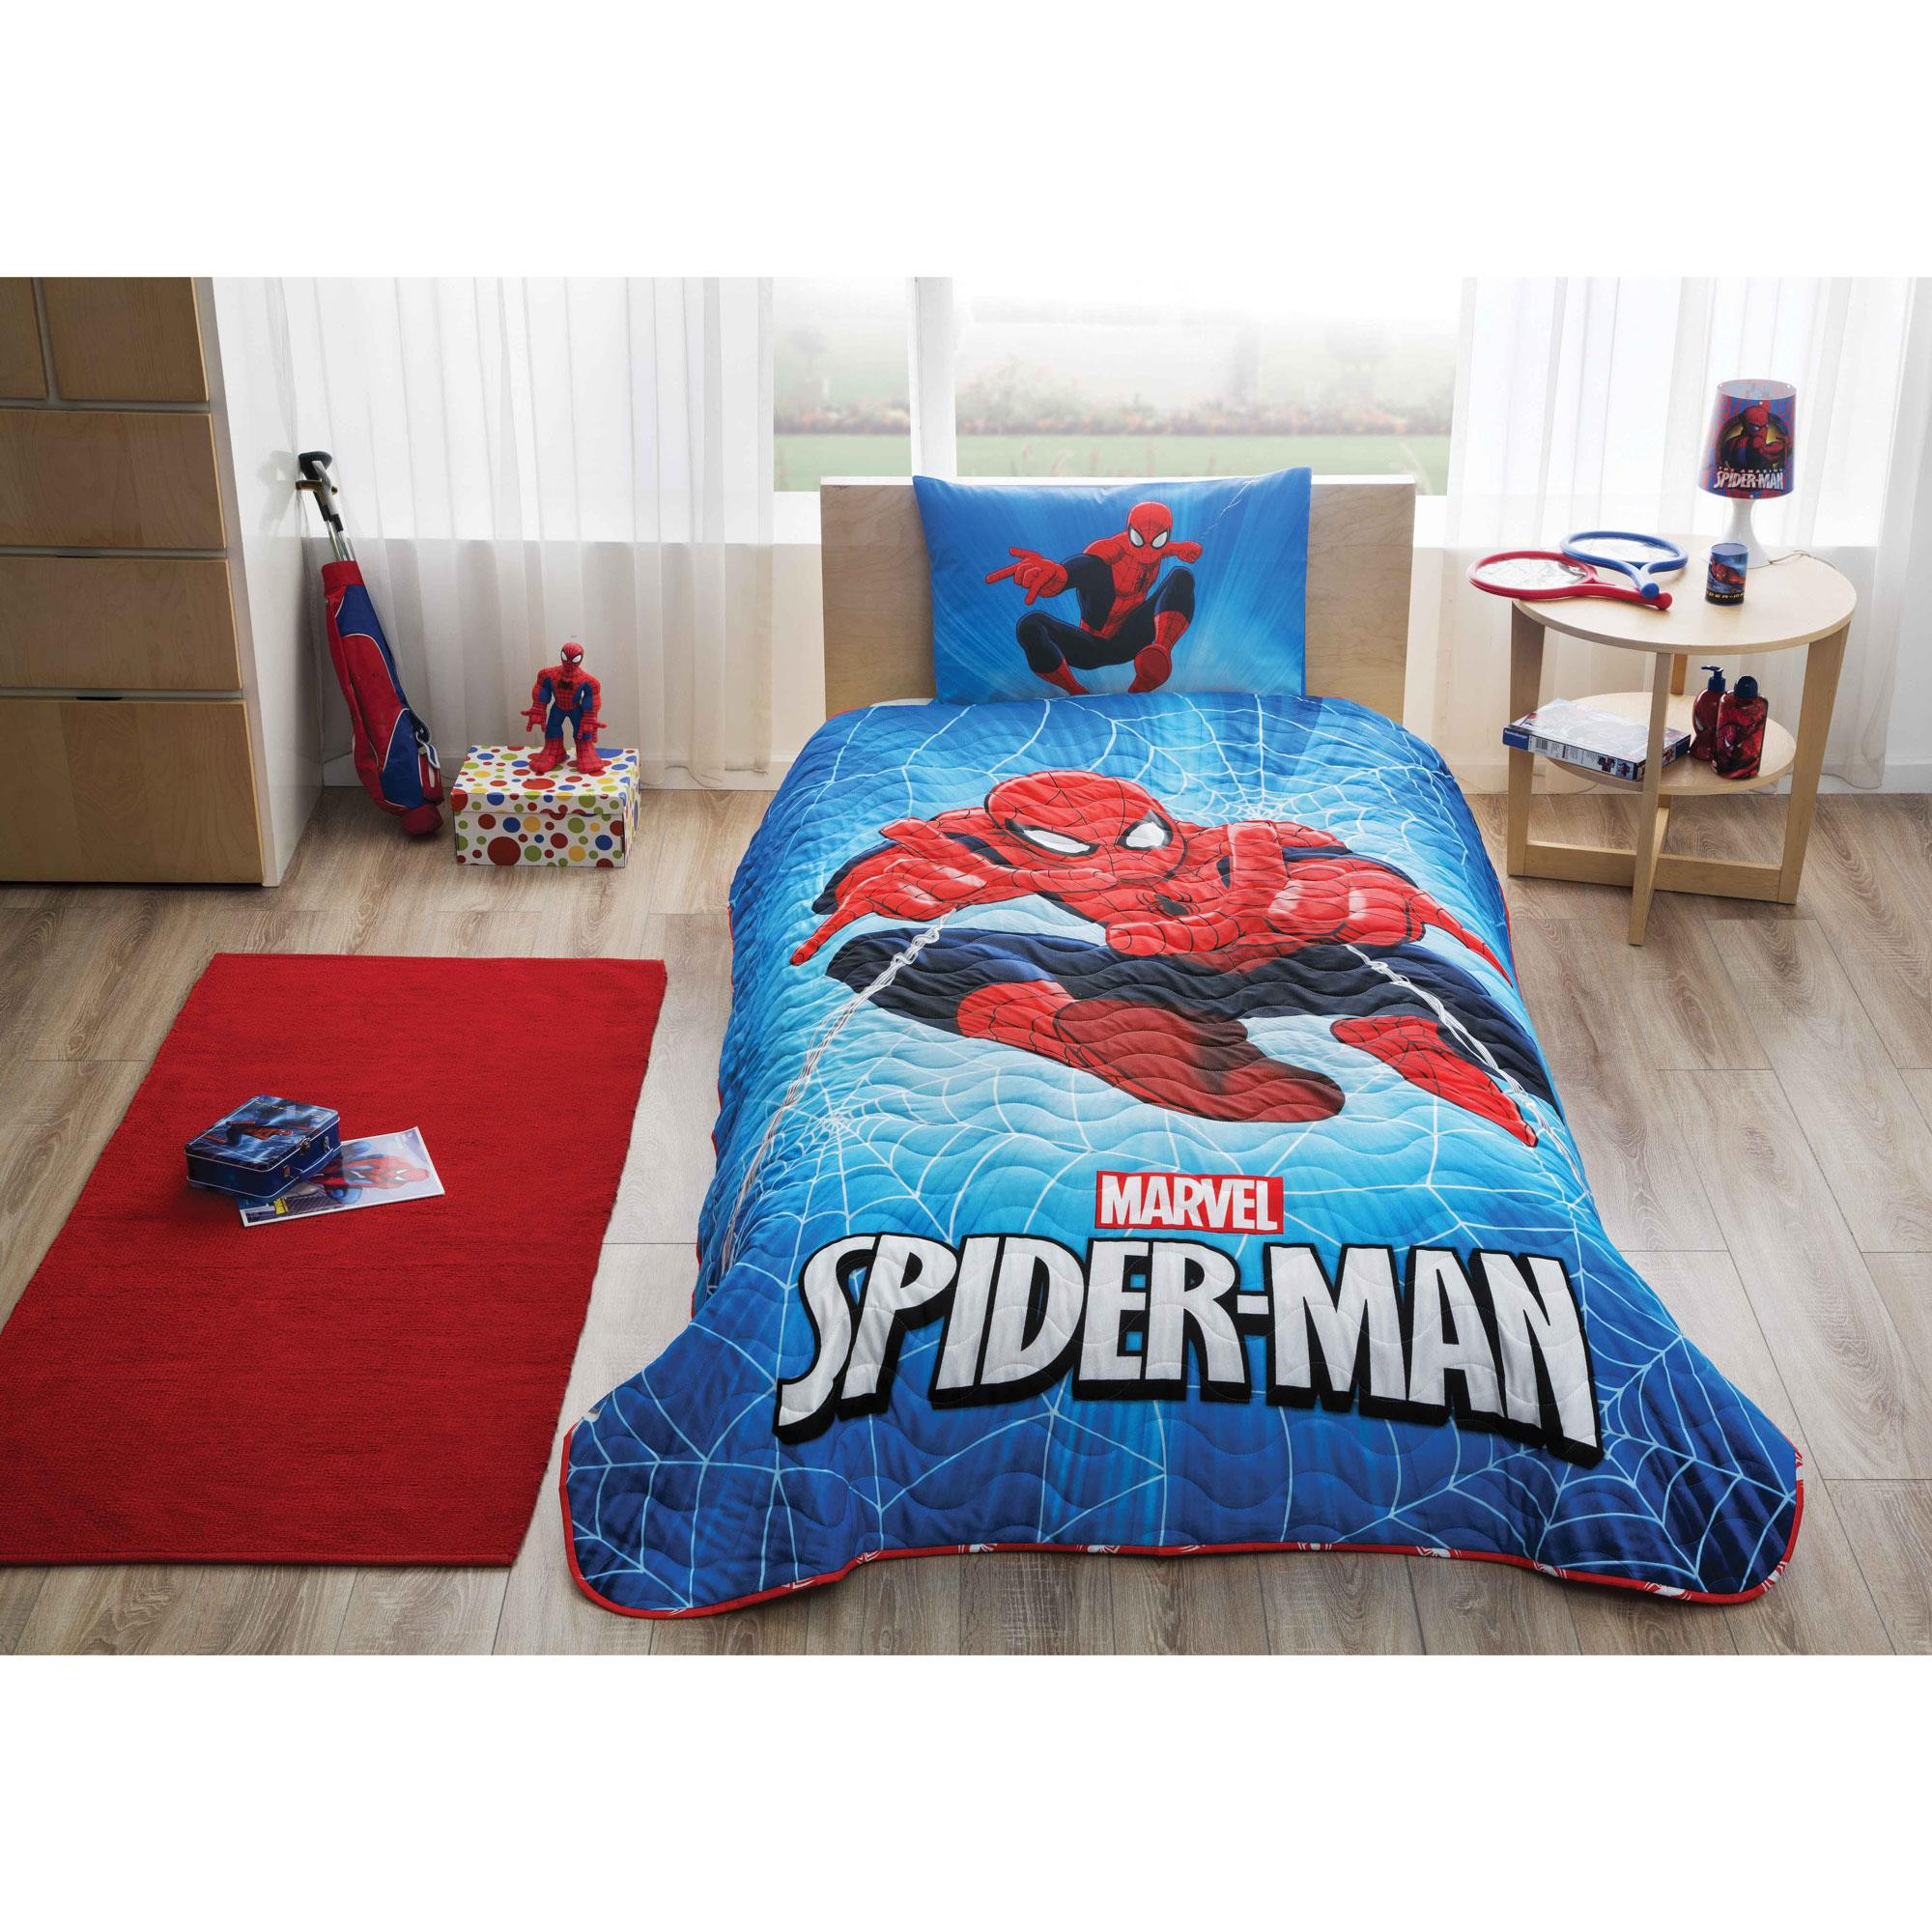 . Noname Spiderman Skyscaper Licensed Single Bedspread Set 144TAC9136   Blue  Red White Black